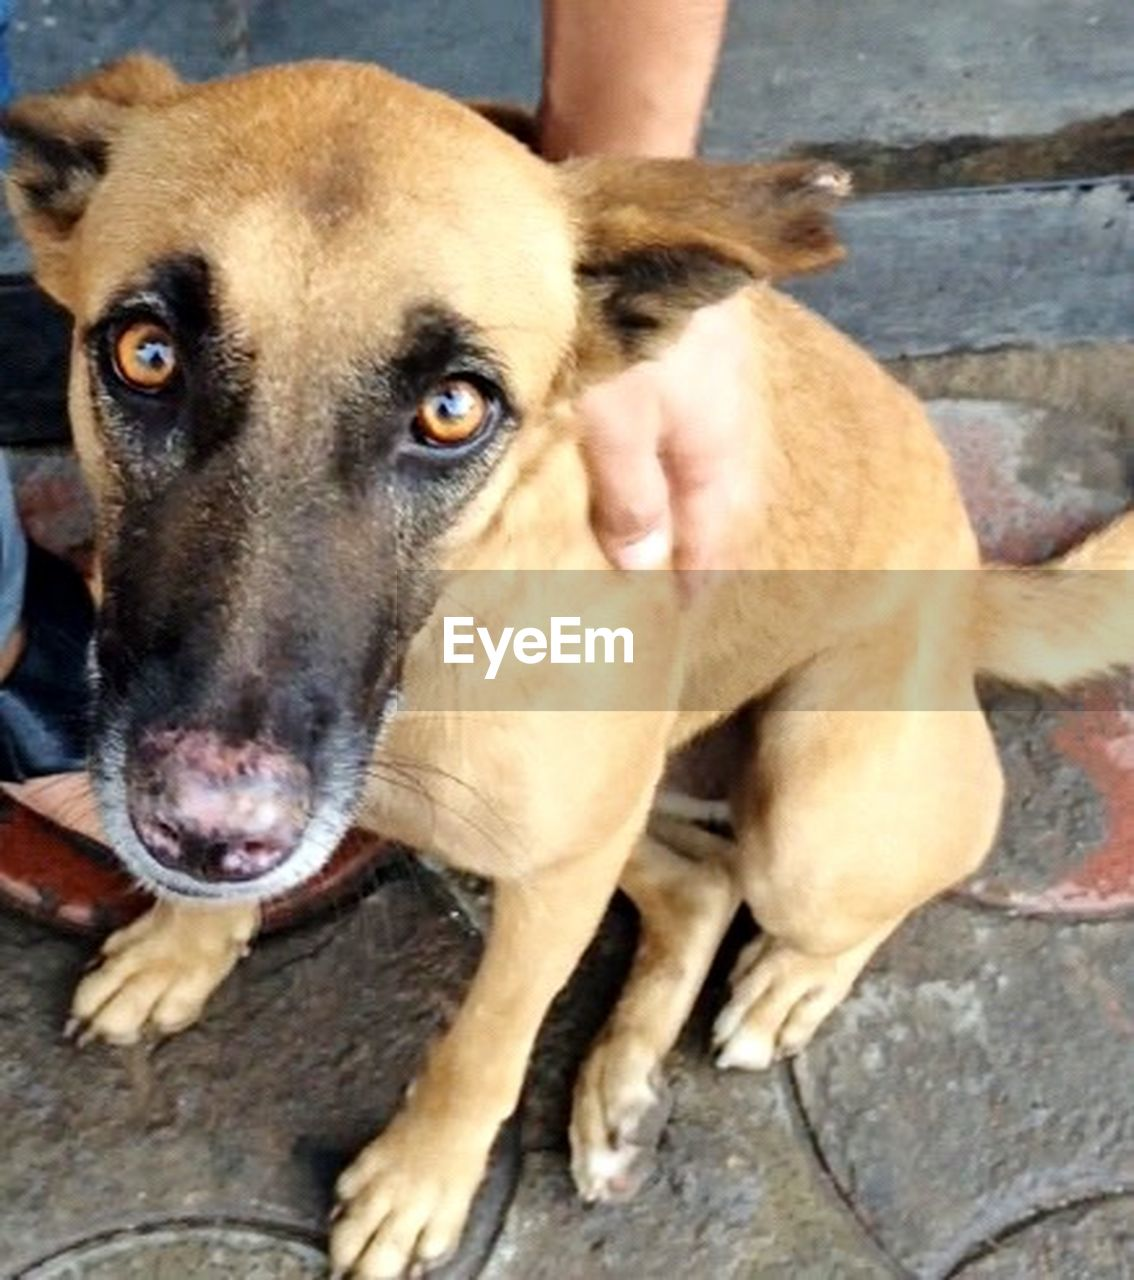 dog, pets, one animal, animal themes, domestic animals, day, outdoors, portrait, mammal, looking at camera, close-up, human body part, human hand, one person, people